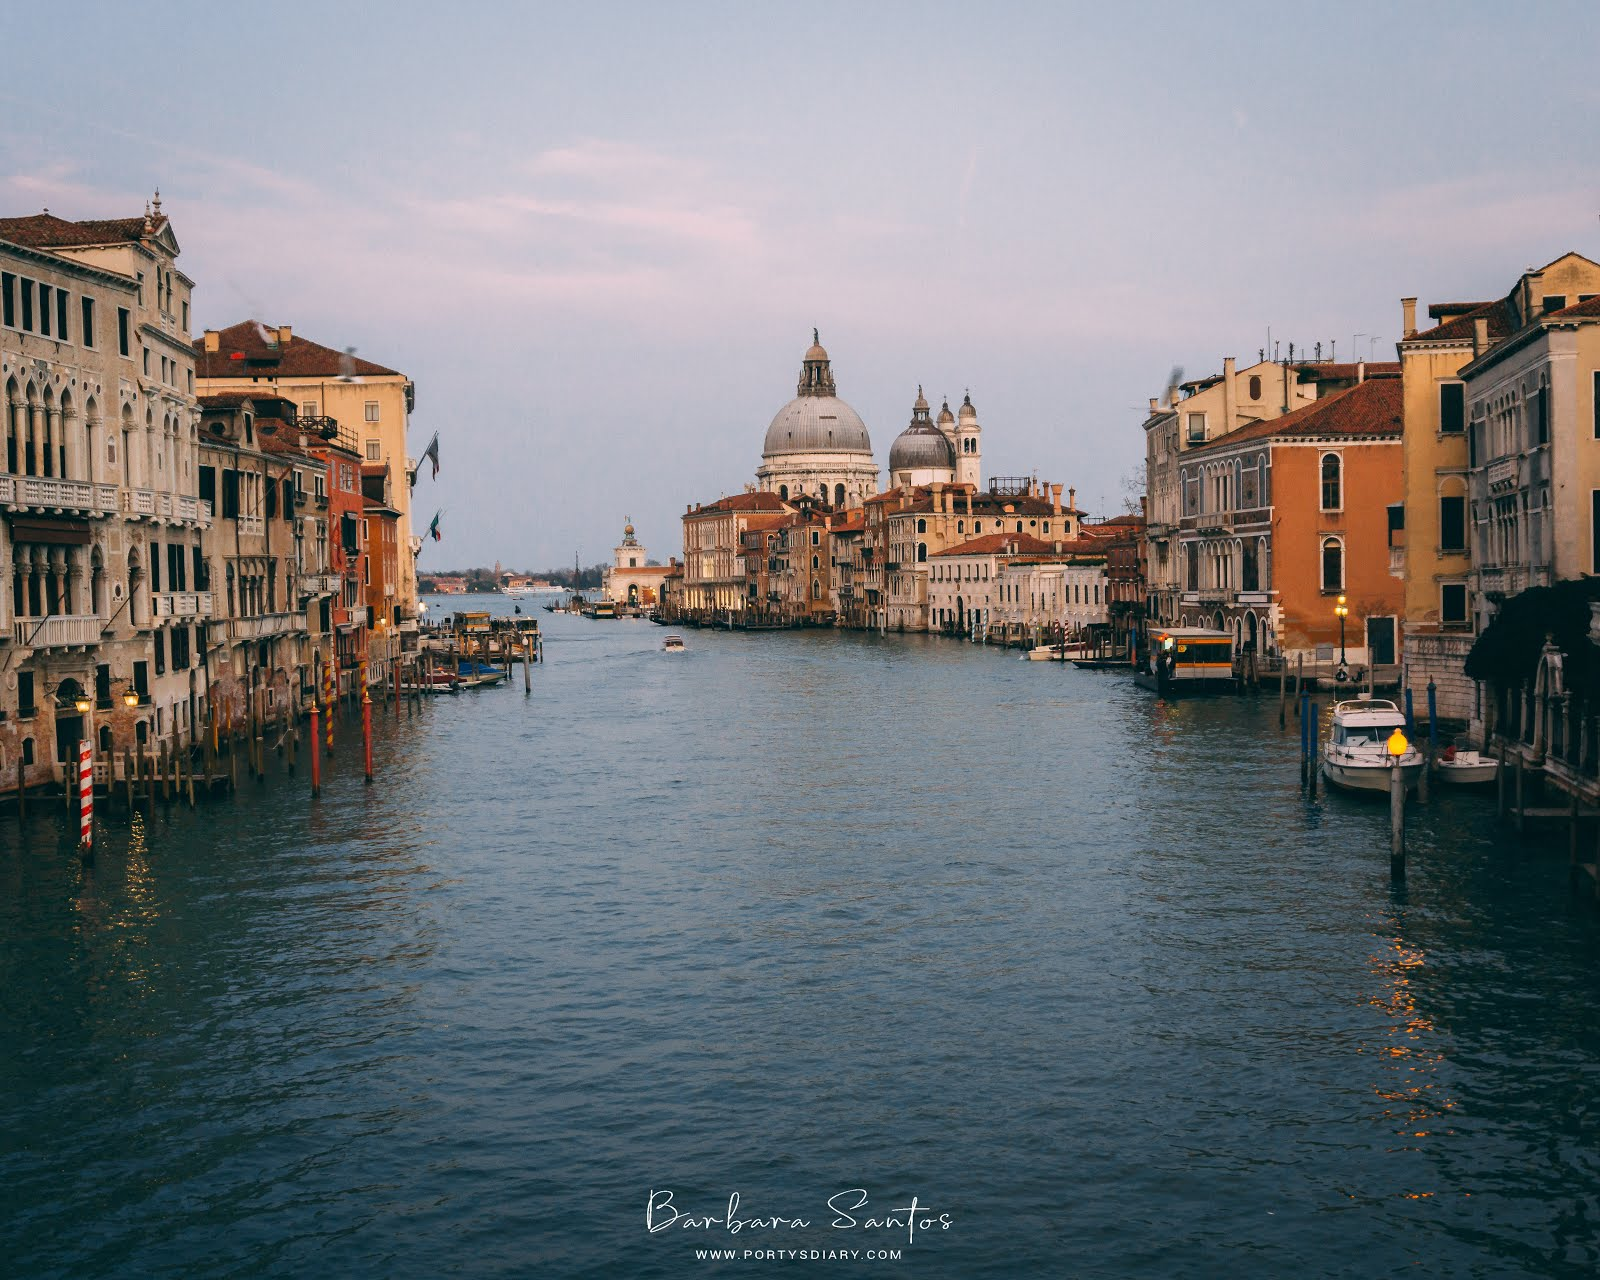 Travel - A weekend in Venice, Italy. All photos taken with Sony a6000 by Bárbara Santos for www.portysdiary.com